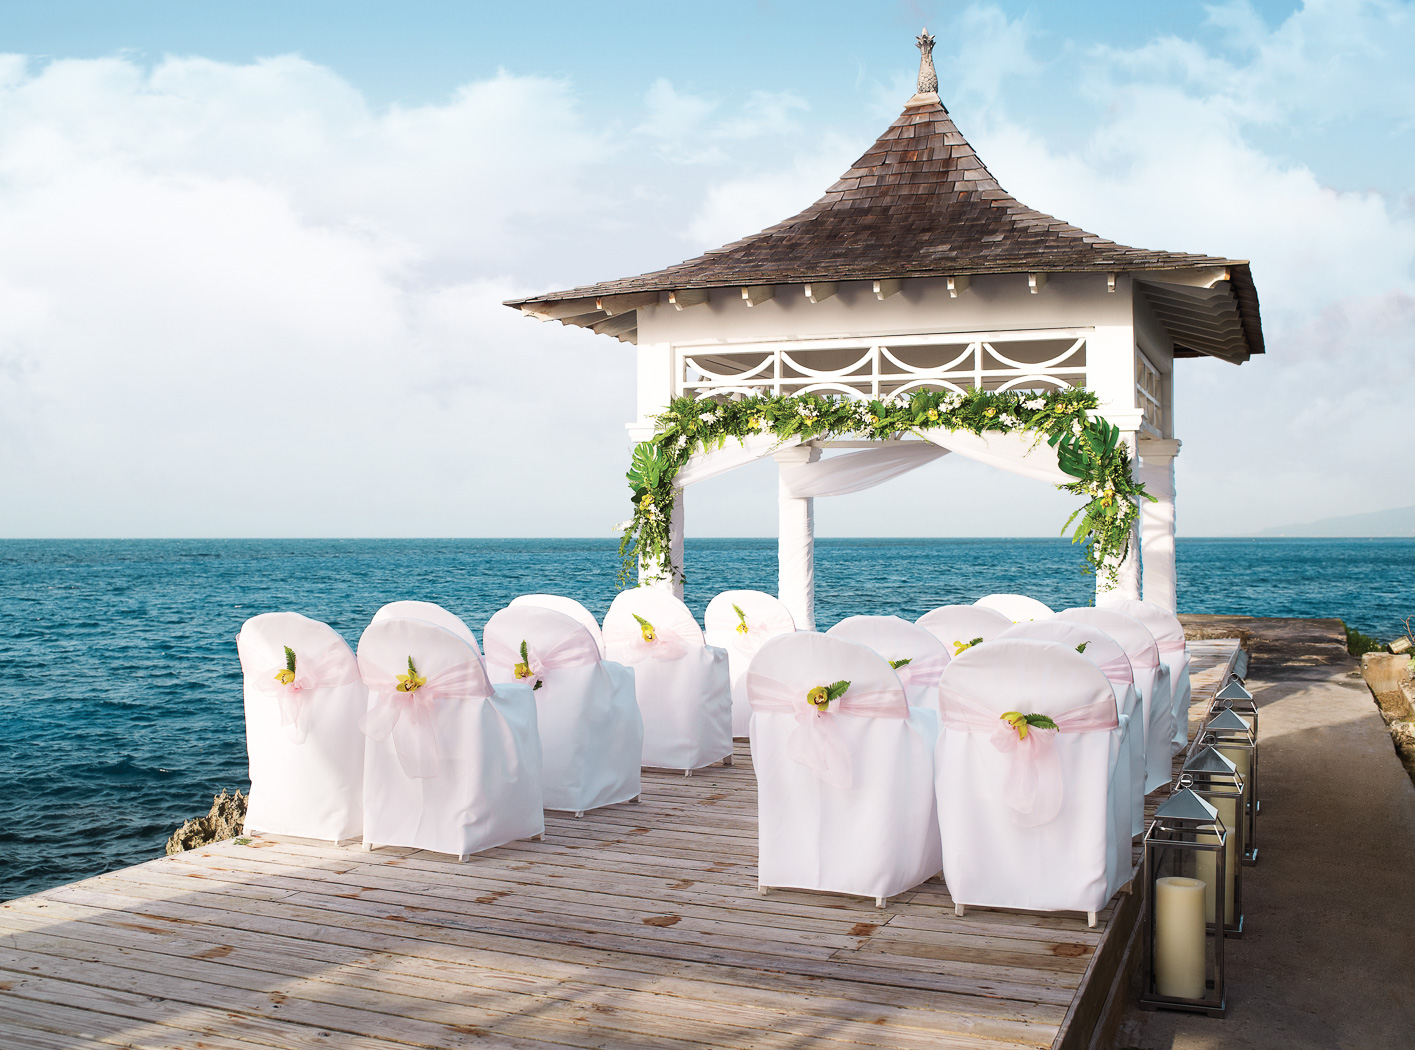 Private island wedding couples resorts for Top 10 couples resorts